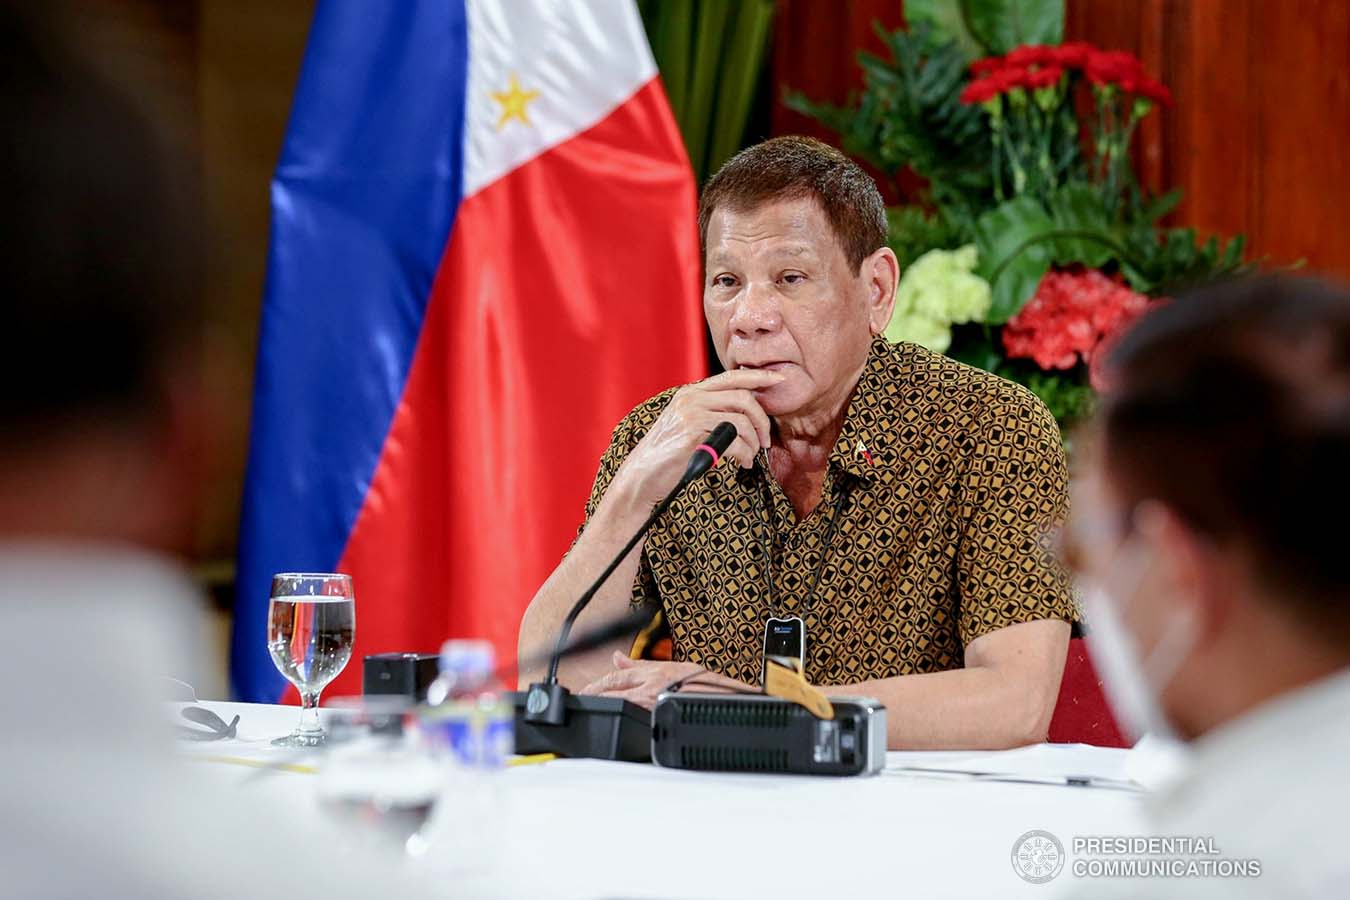 President Rodrigo Roa Duterte talks to the people after holding a meeting with the Inter-Agency Task Force on the Emerging Infectious Diseases (IATF-EID) core members at the Malago Clubhouse in Malacañang on September 28, 2020. RICHARD MADELO/ PRESIDENTIAL PHOTO